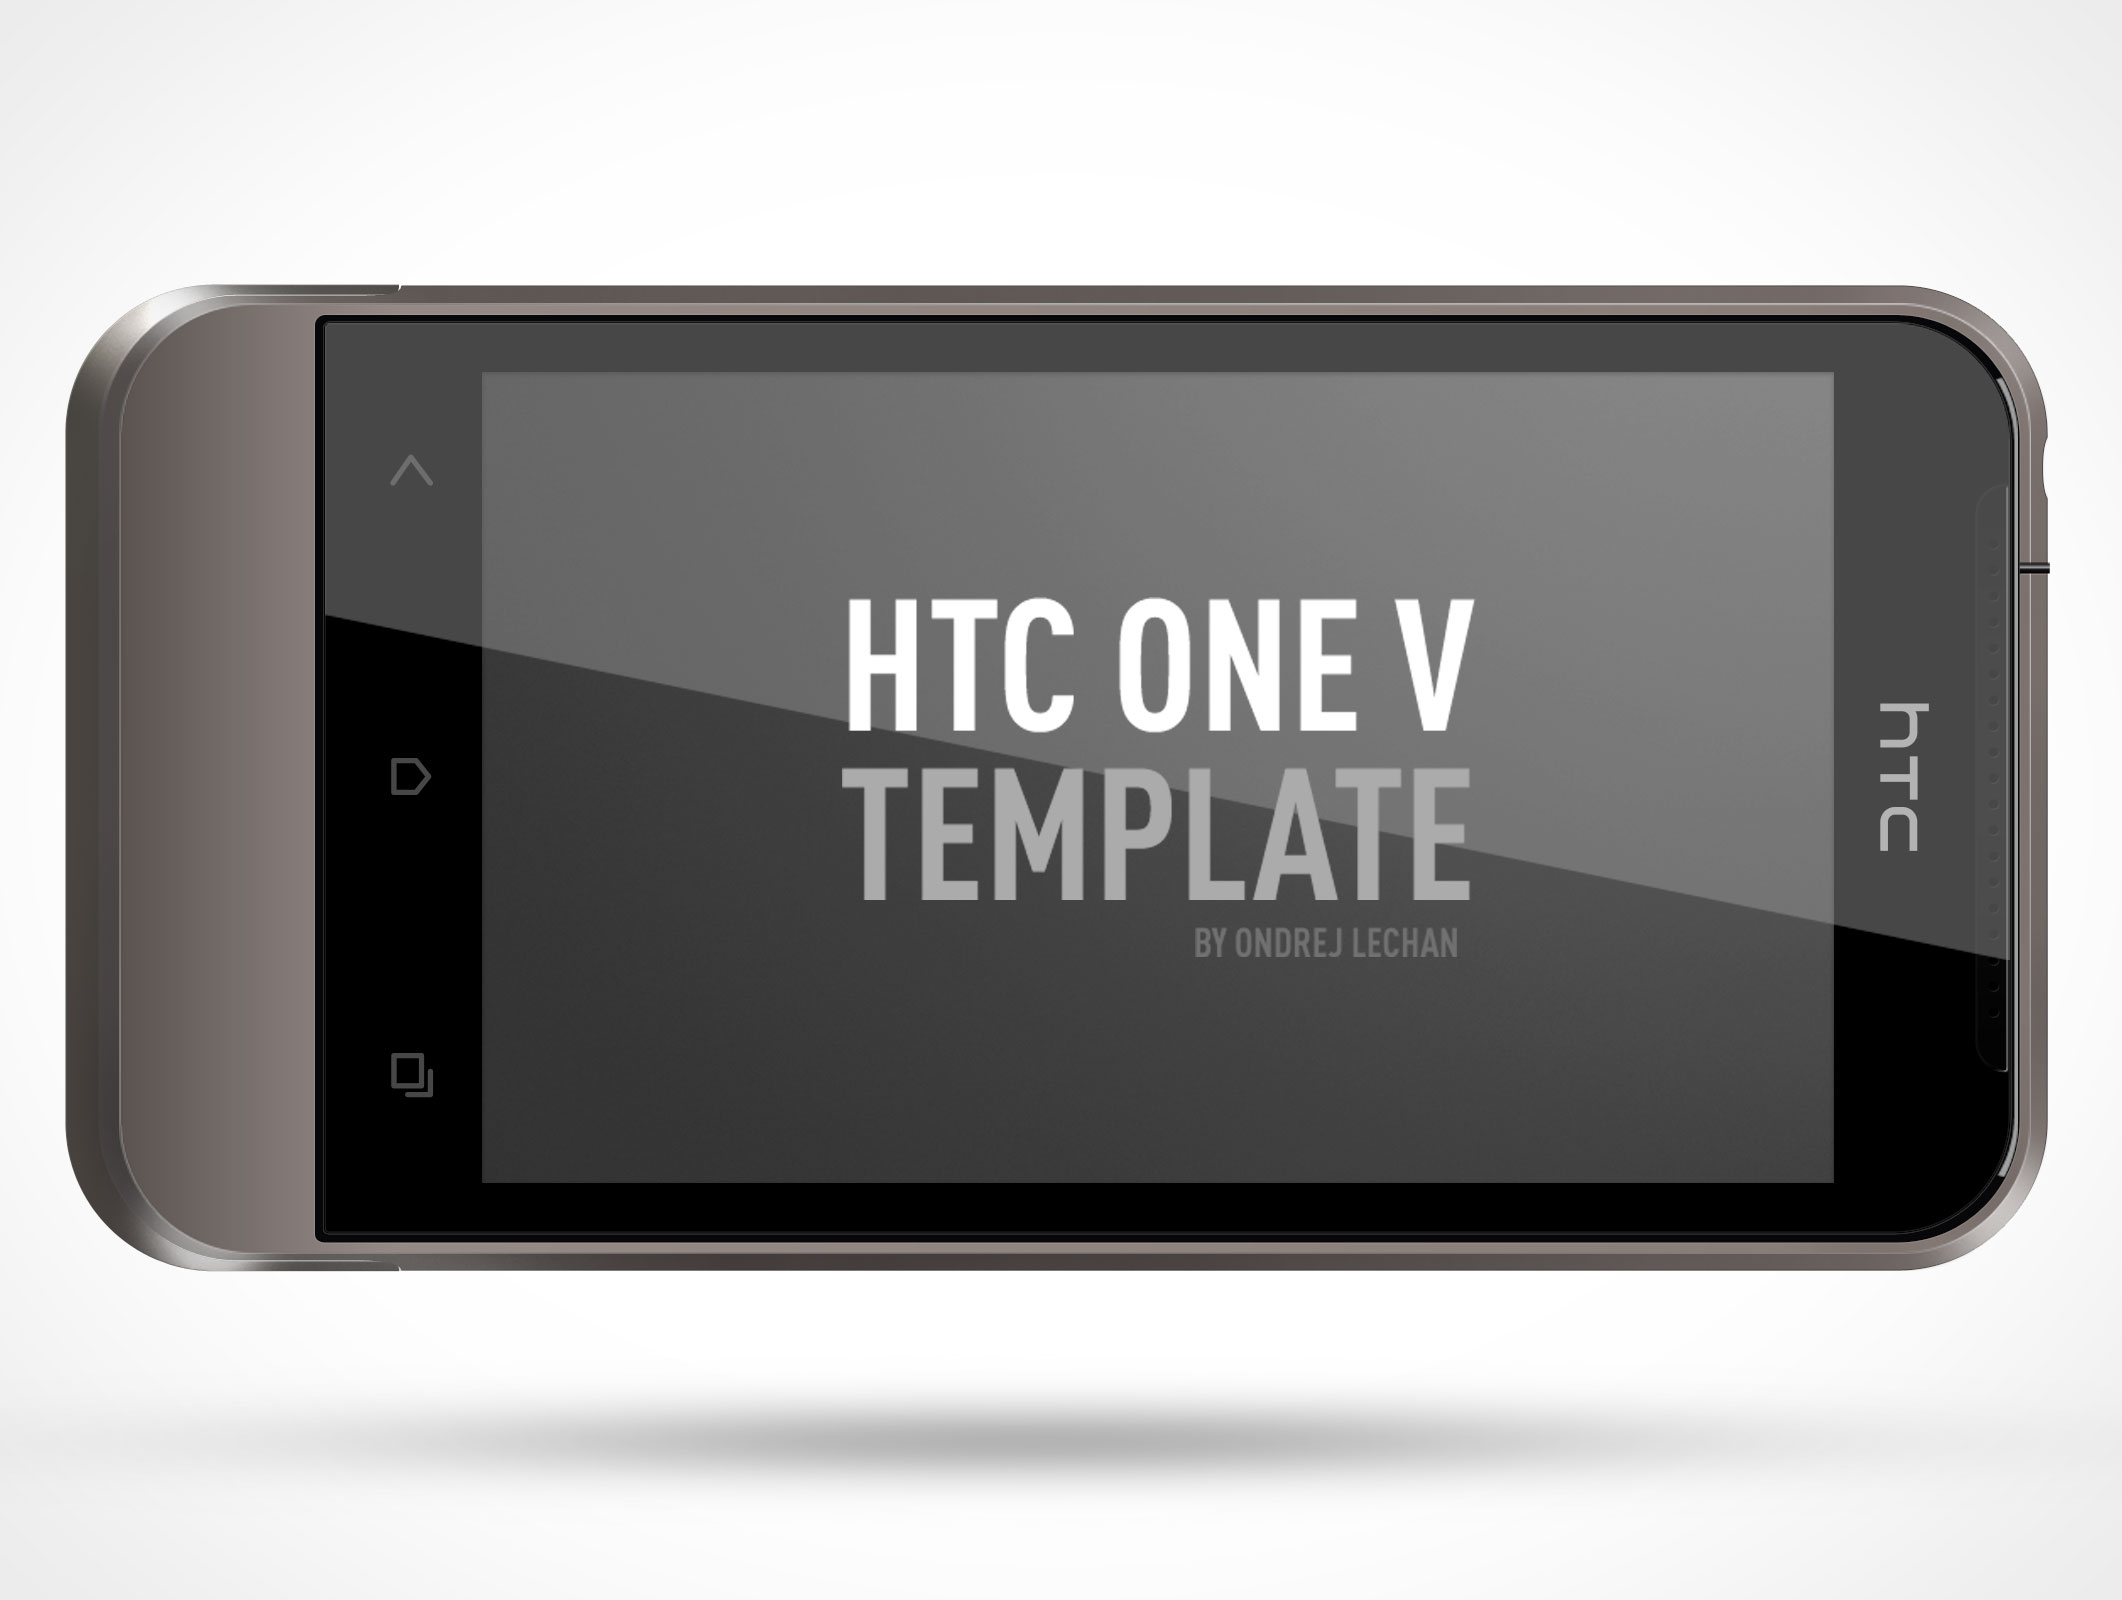 HTC001-One-V-Android-landscape-mode-PSD-Mockup-Template •